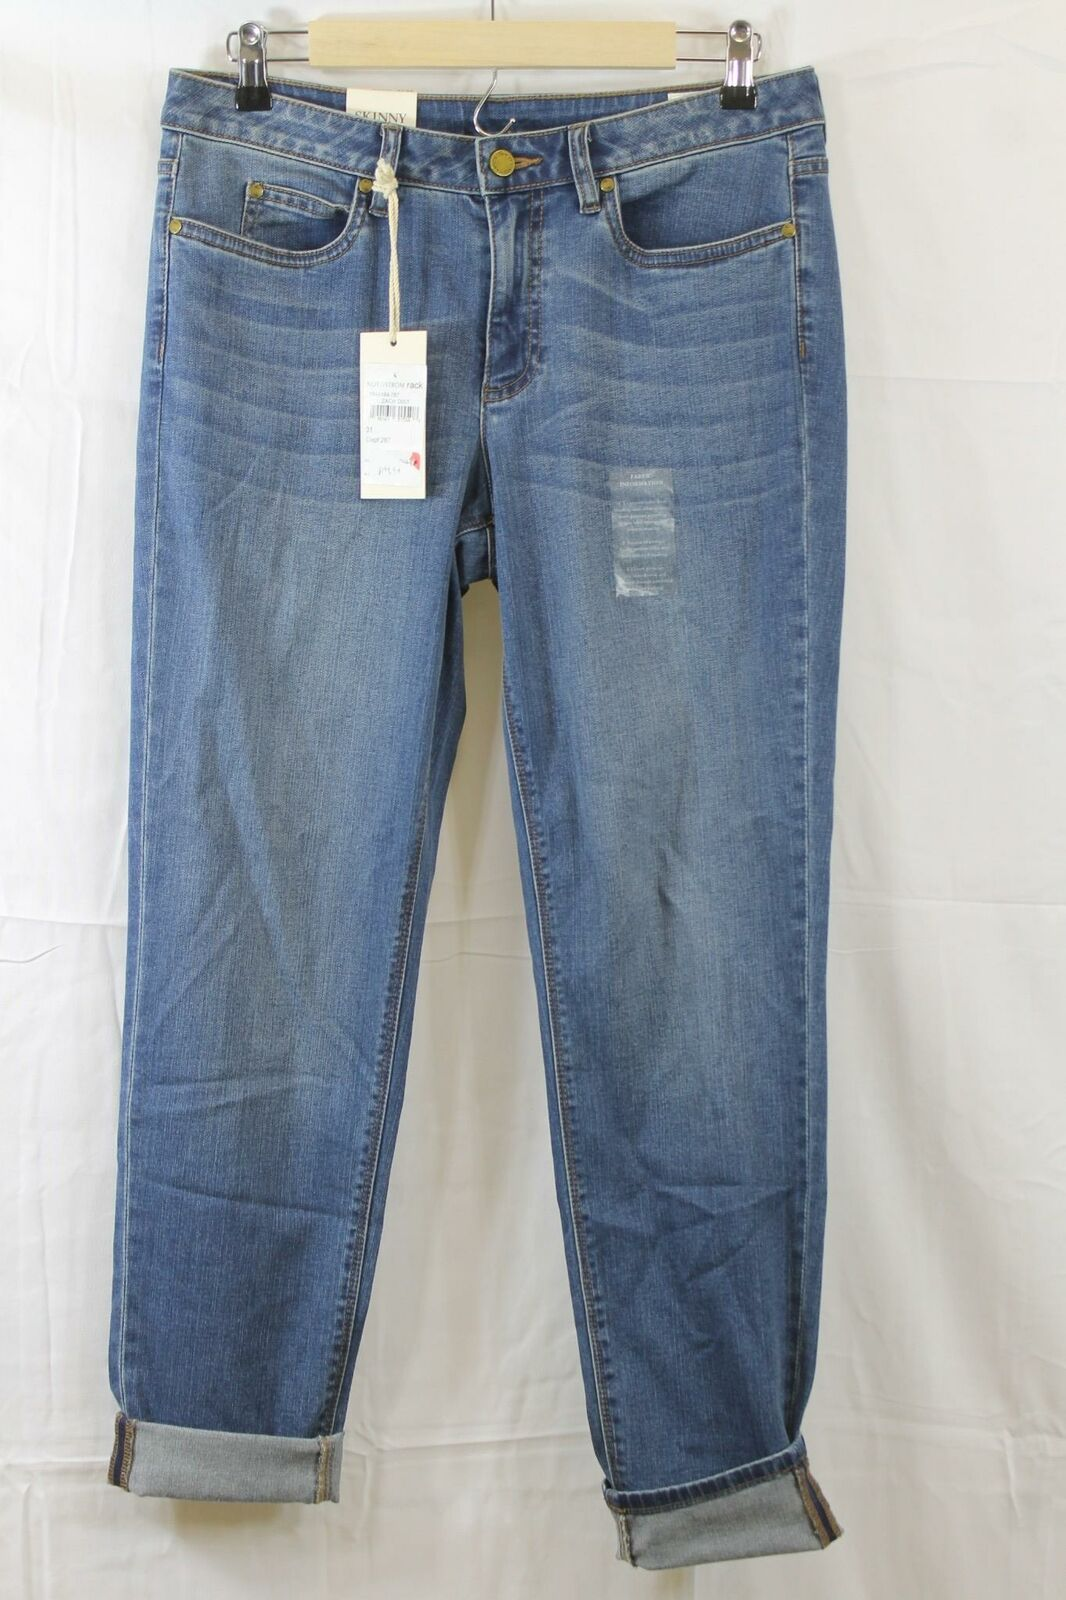 Womens Two By Vince Camuto Jeans Size 30 10 New w Tags  200